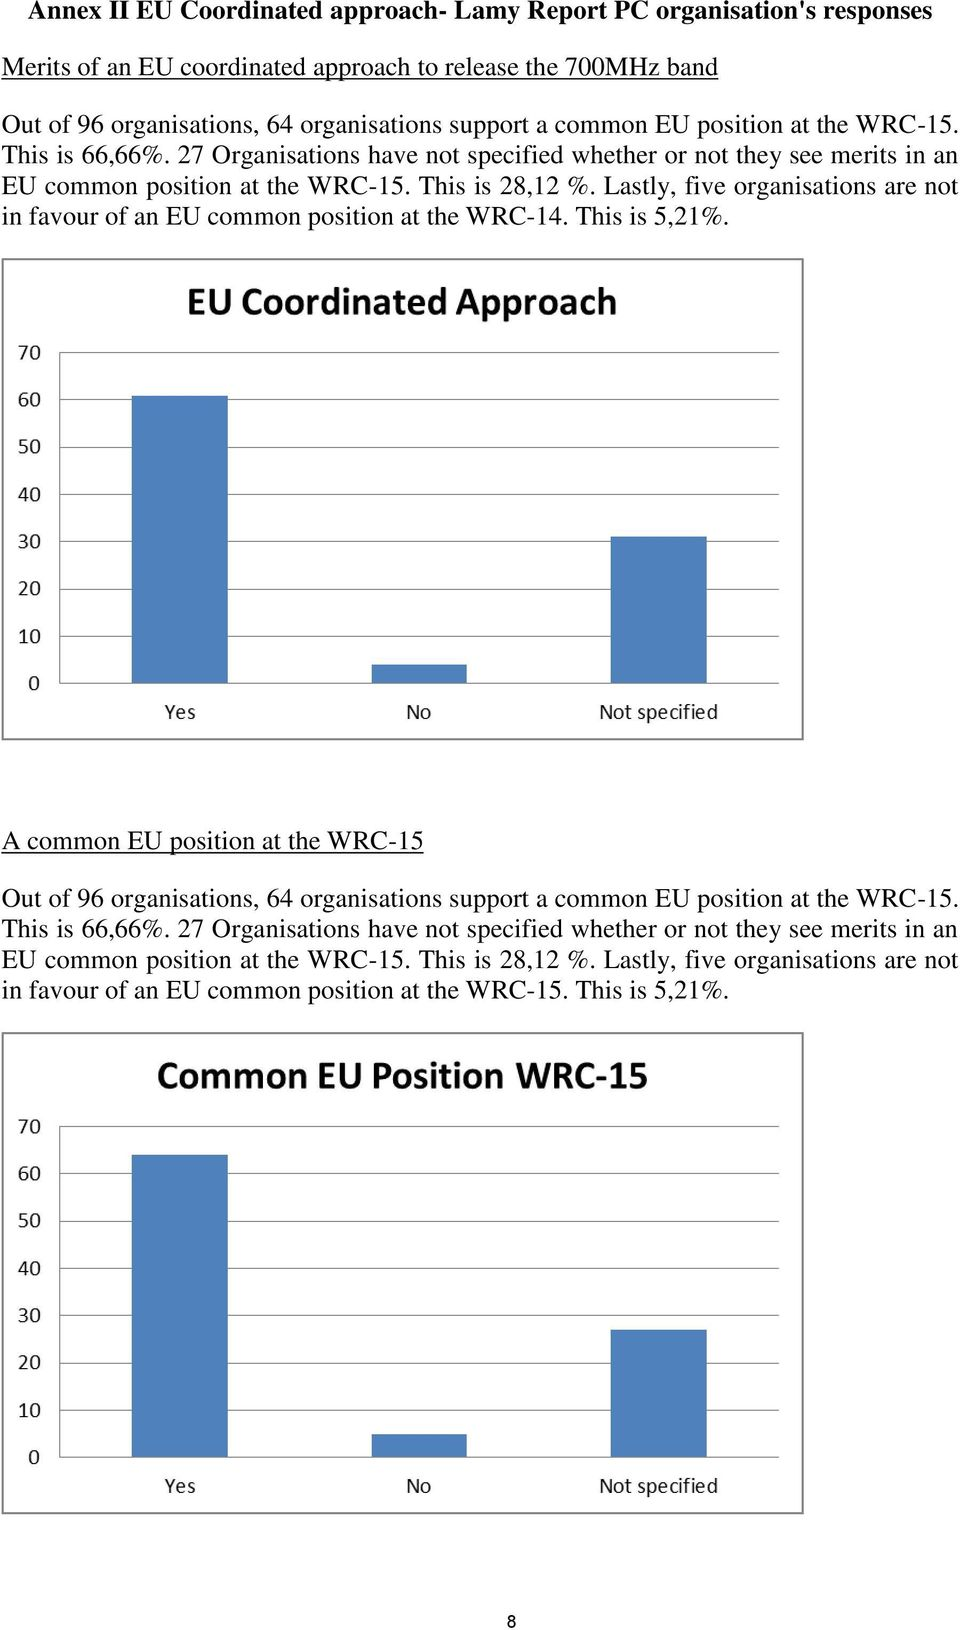 Lastly, five organisations are not in favour of an EU common position at the WRC-14. This is 5,21%.